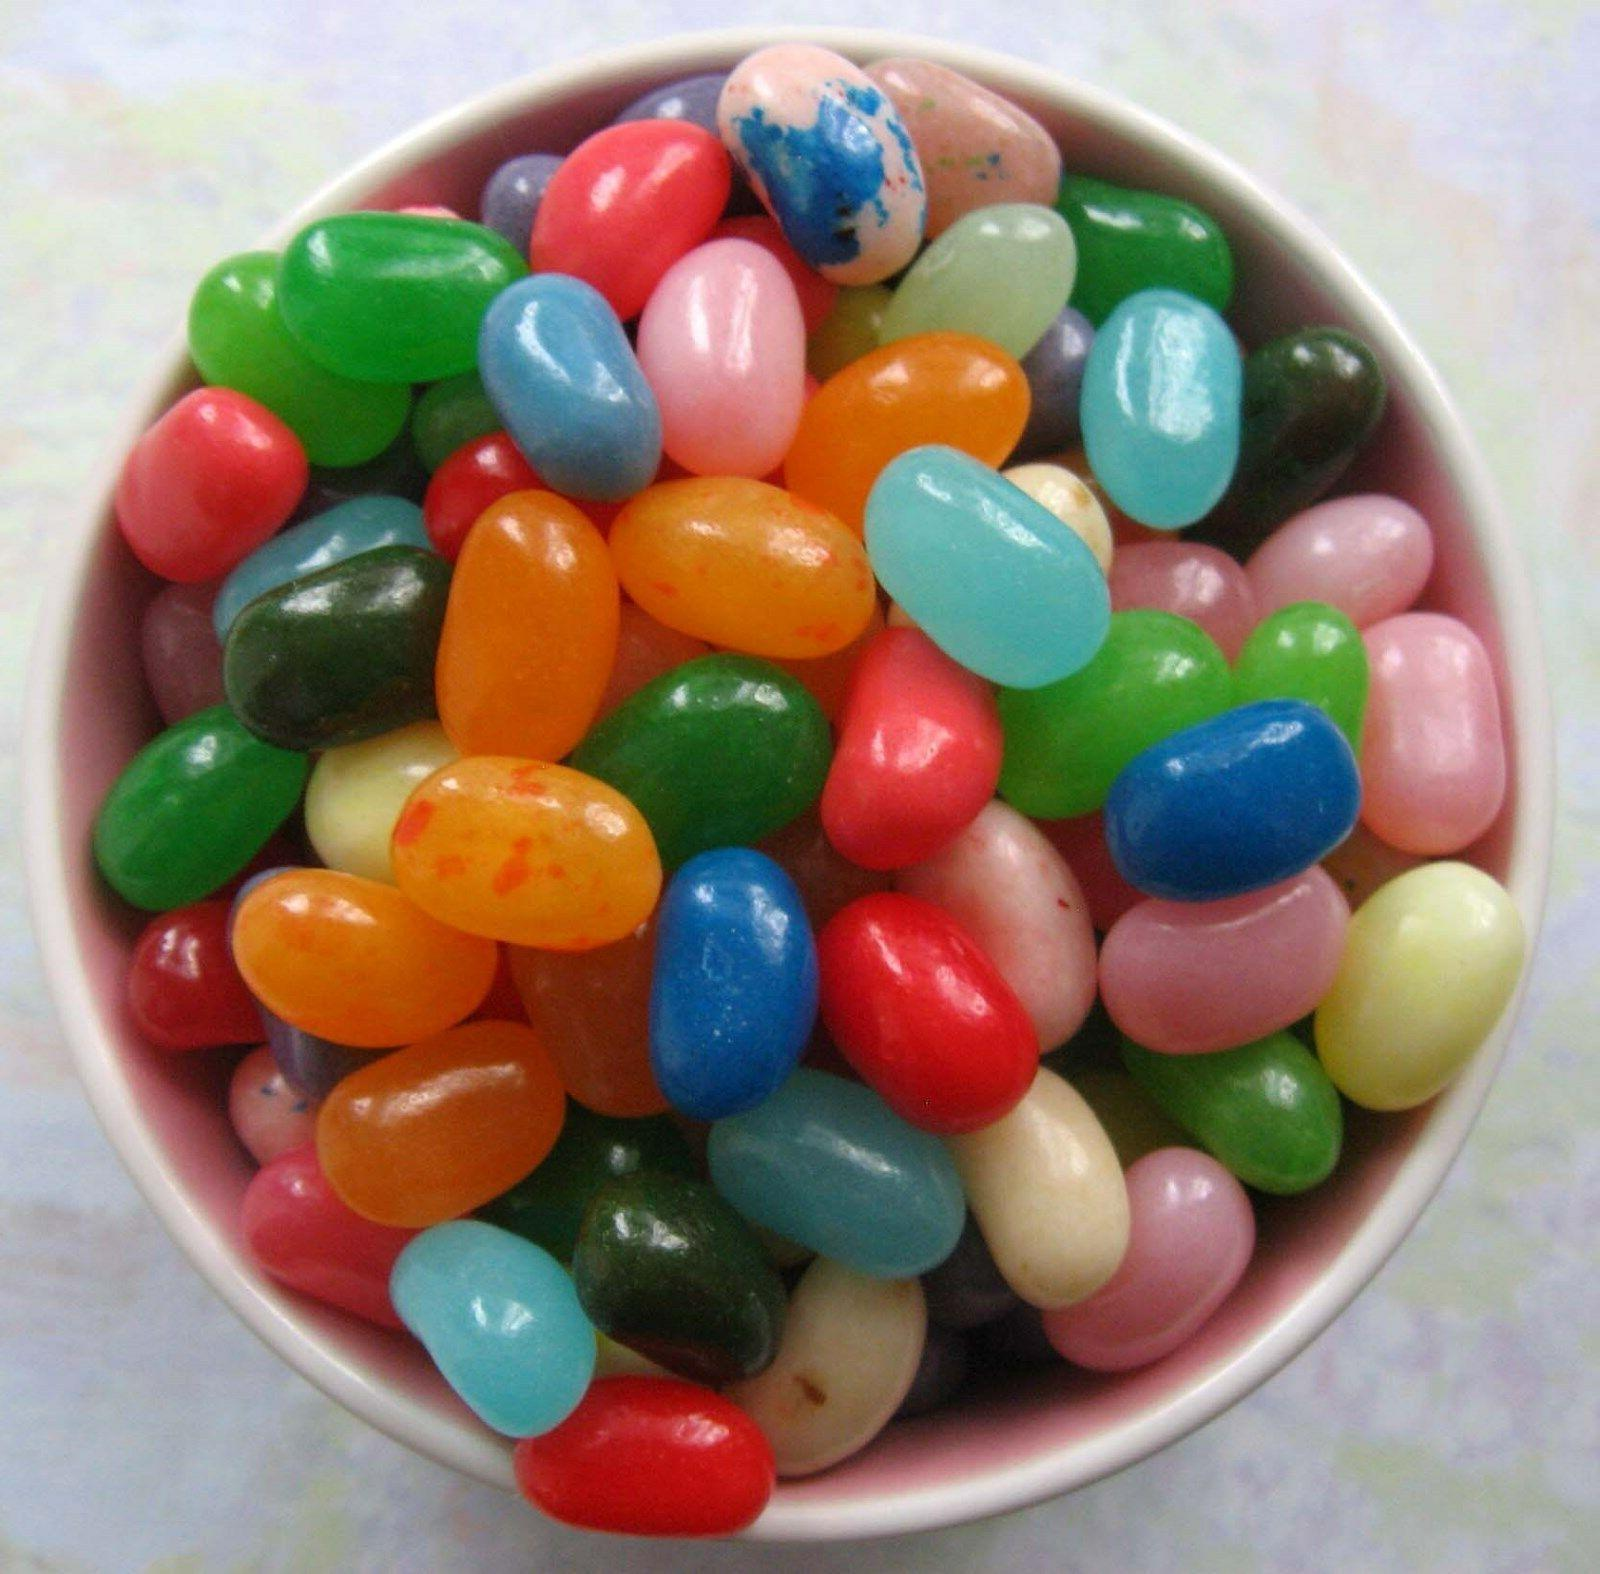 Gimbals Gourmet Jelly Beans Candy 41 Real Fruit Flavors Favo